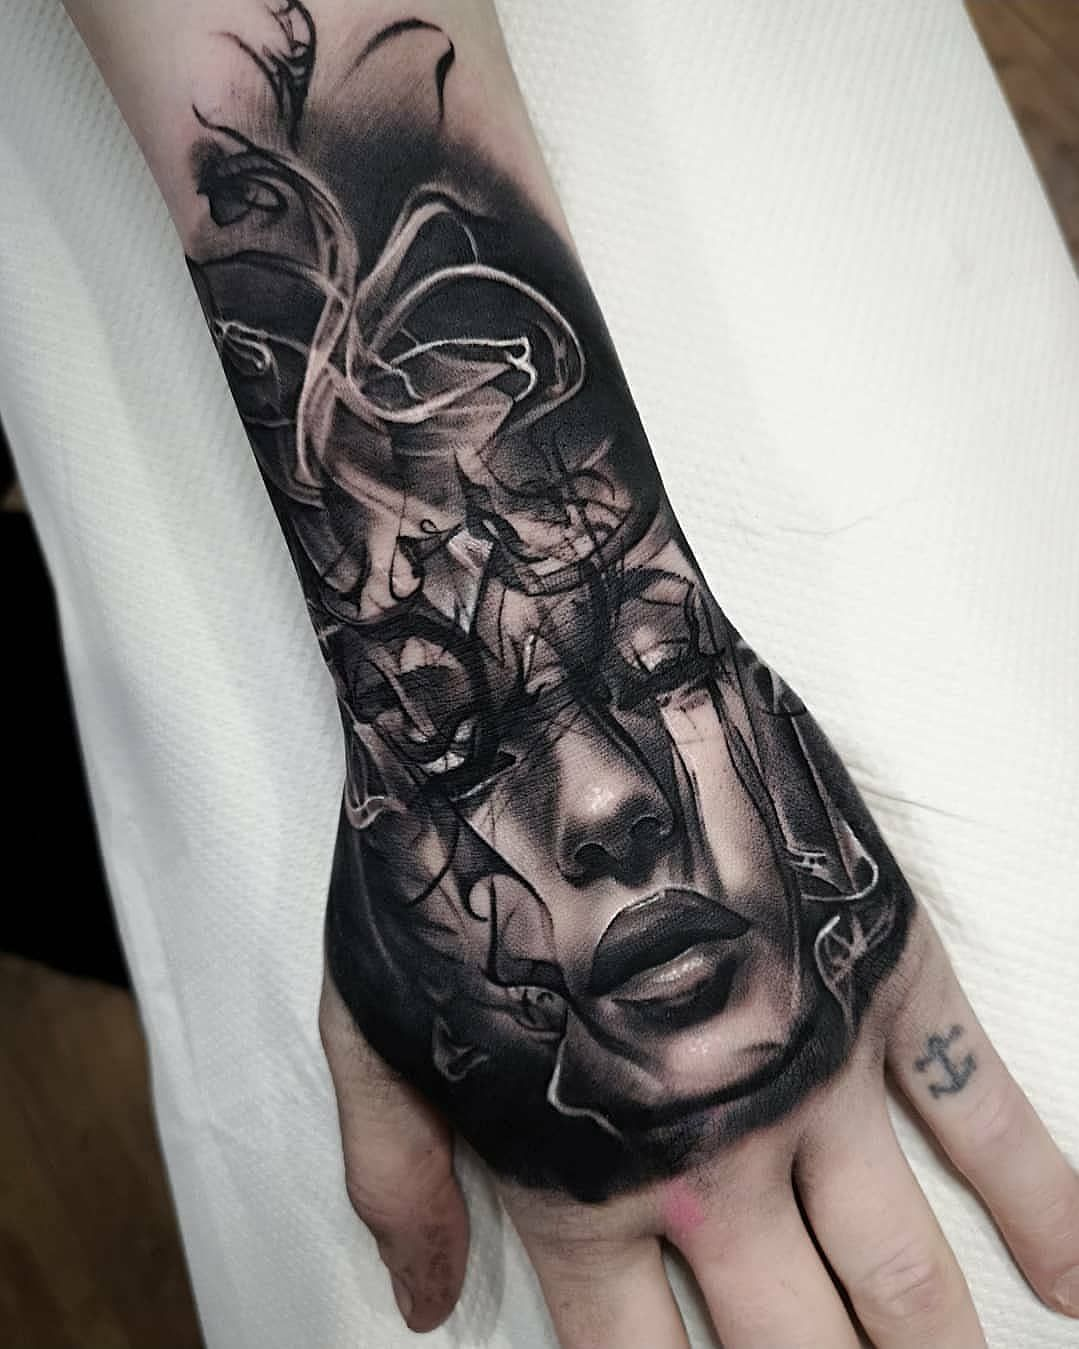 Oh tattooing I do miss you so.... . . .  @thechurchtattoo @fkirons @worldfamousink @thebesttattooartists @electrumstencilproducts @butterluxe_uk @barber_dts #skinartmag #inkjunkeyz #tattoo #tattooartistmagazine #inkedmagazine #bng #blackandgrey #realism #blackandgreytattoo #fkirons #d_my_world_of_ink @skinart_mag @thebestbngtattooartists #sullen #sullenart #ink #inked #tattoos #tattooart #tattooartist #redditch #thechurchtattoo #thechurch